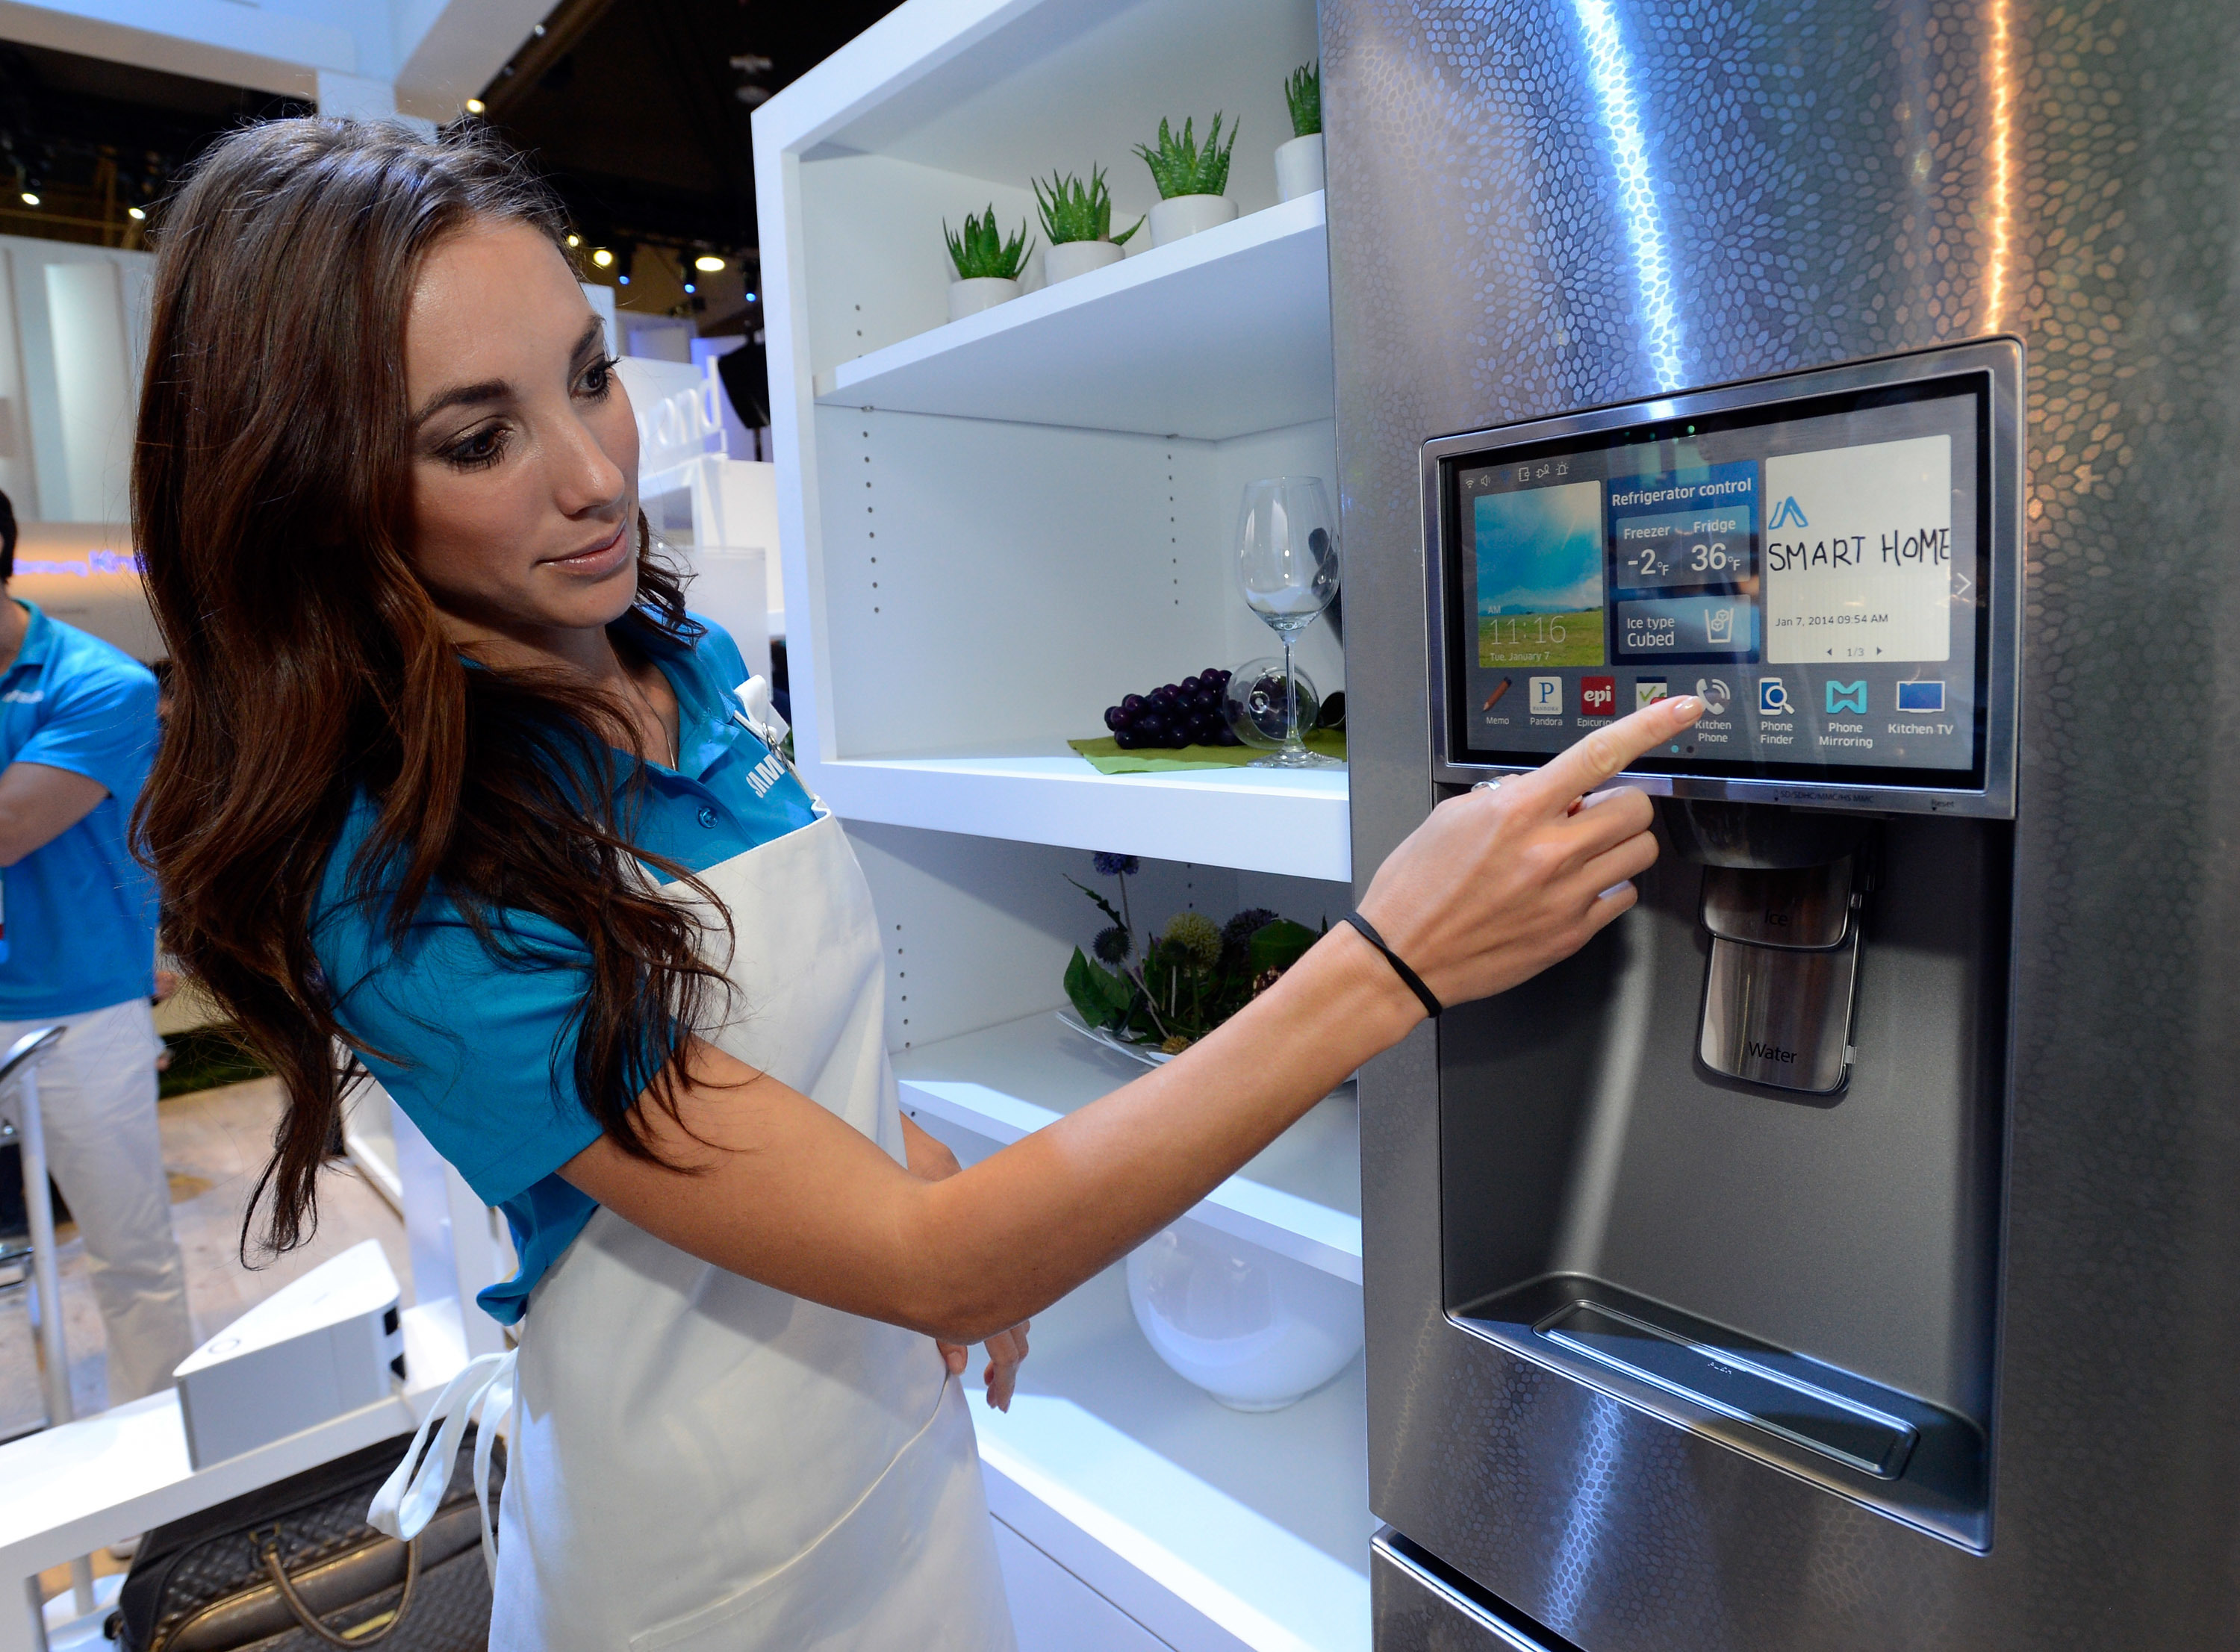 The connectivity feature on a Samsung smart refrigerator.